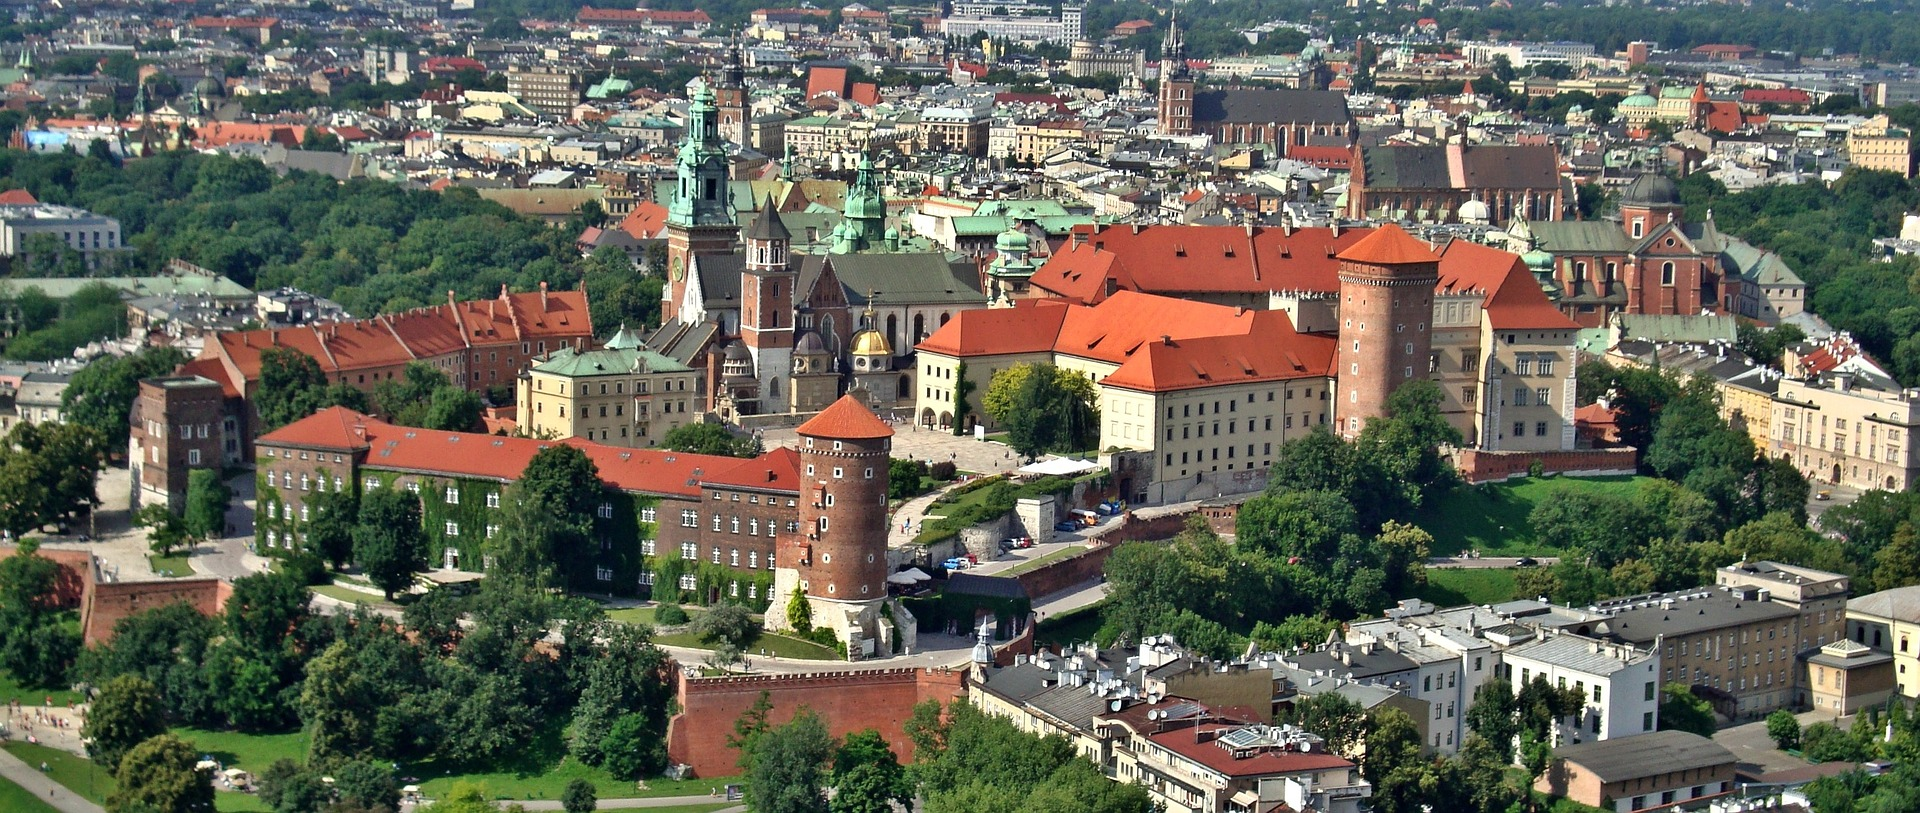 Krakow Travel Guide - 3 Most Compelling Reasons to Visit This City